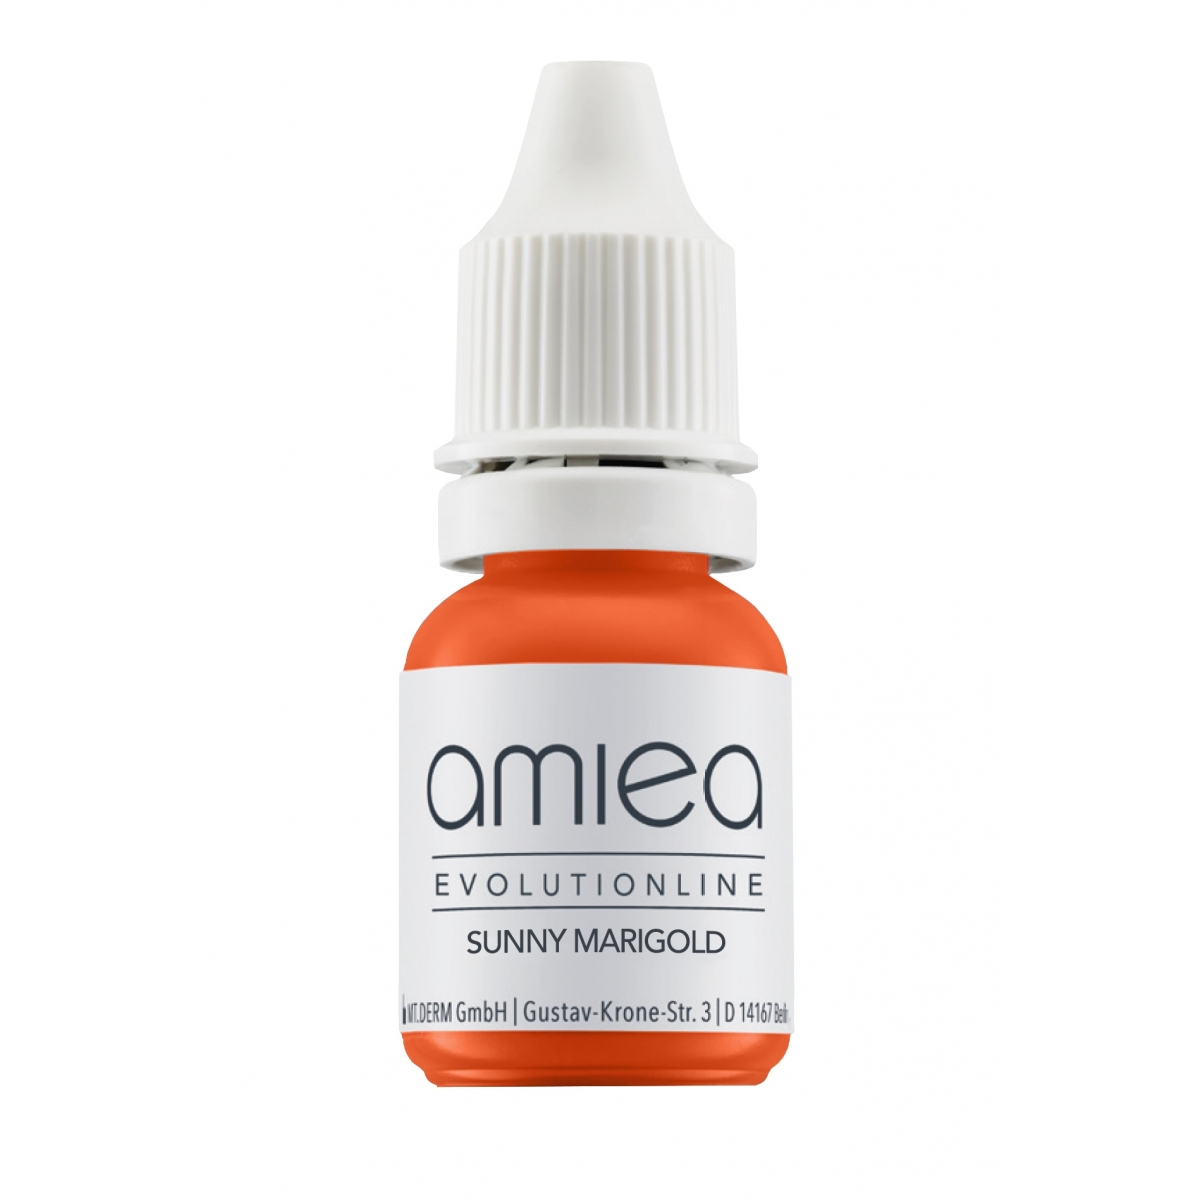 EVOLUTION LINE (10ml) - PIGMENT SUNNY MARIGOLD EVOLUTIONLINE AMIEA (10 ml)